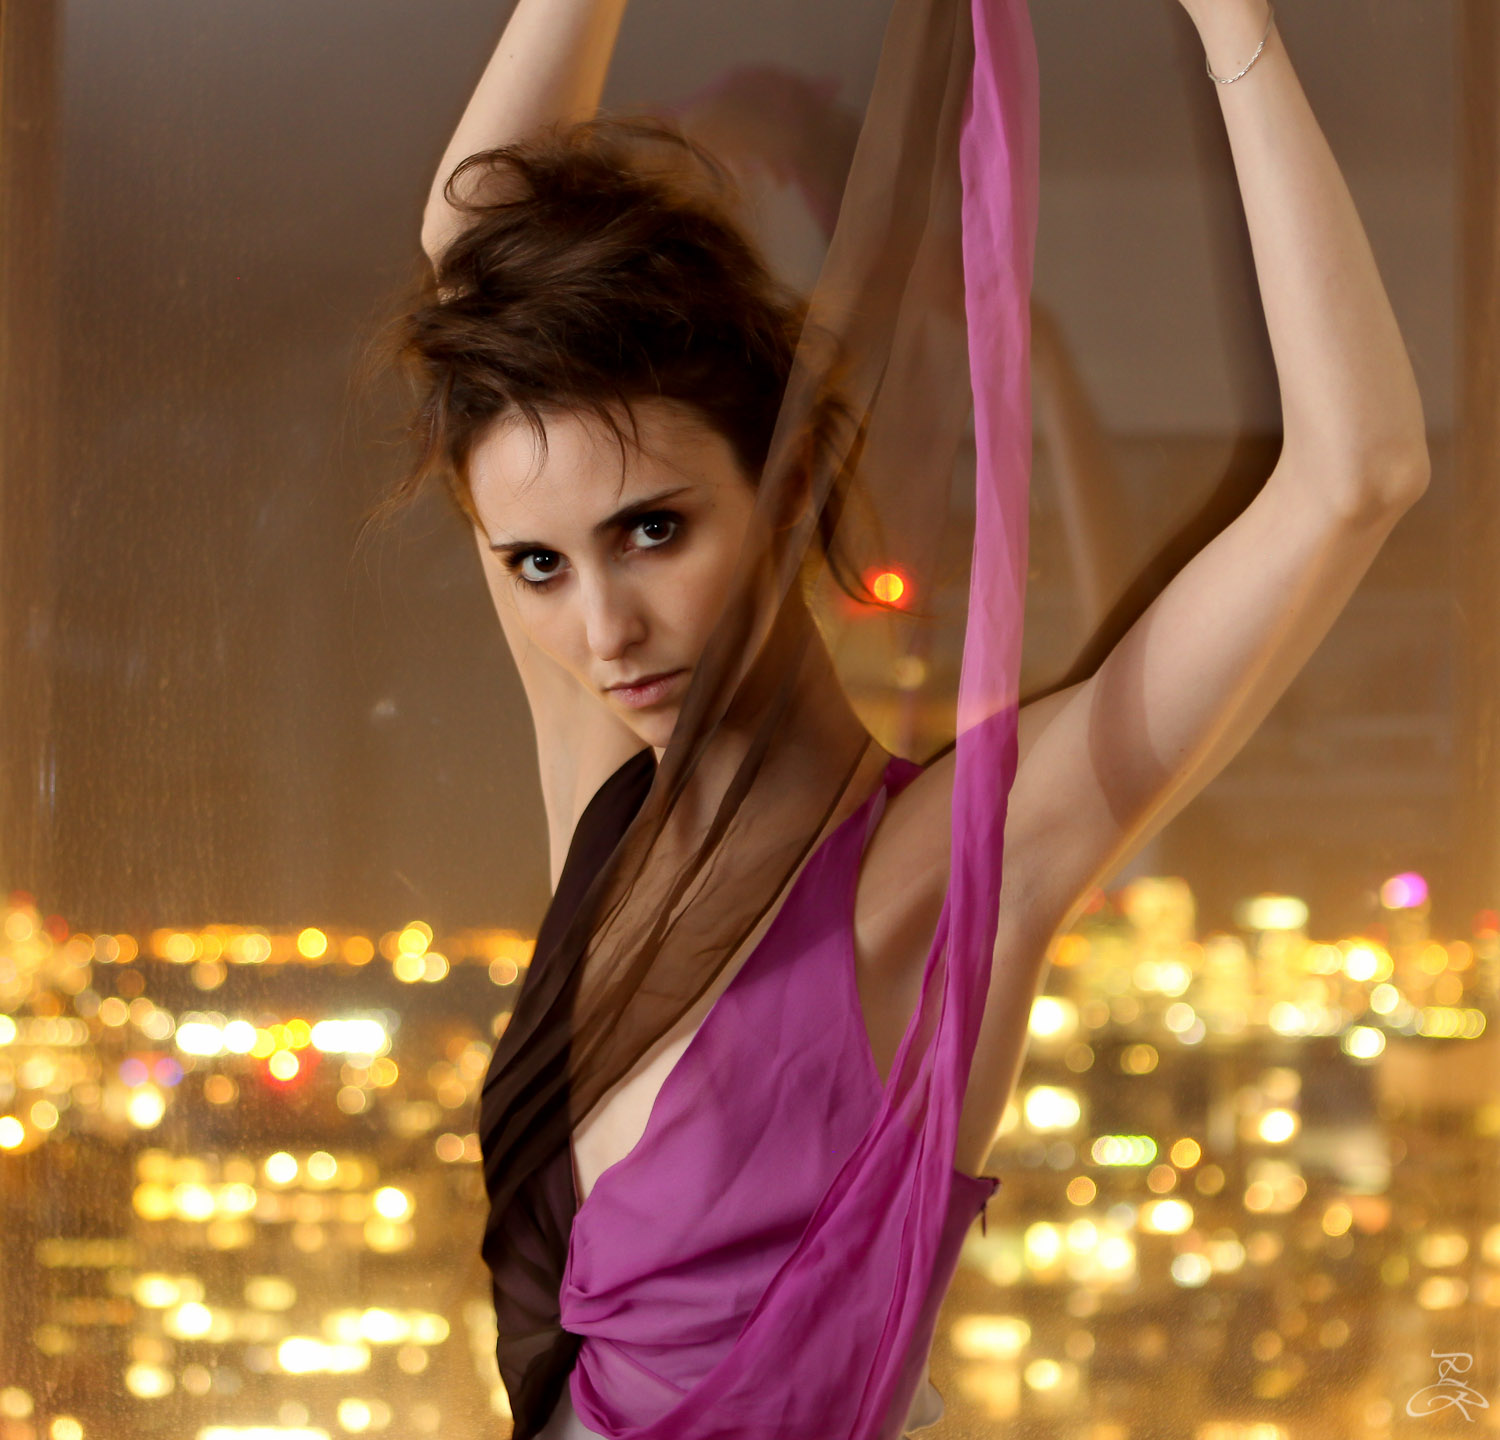 Giovanna Gamna -  model, classical dancer